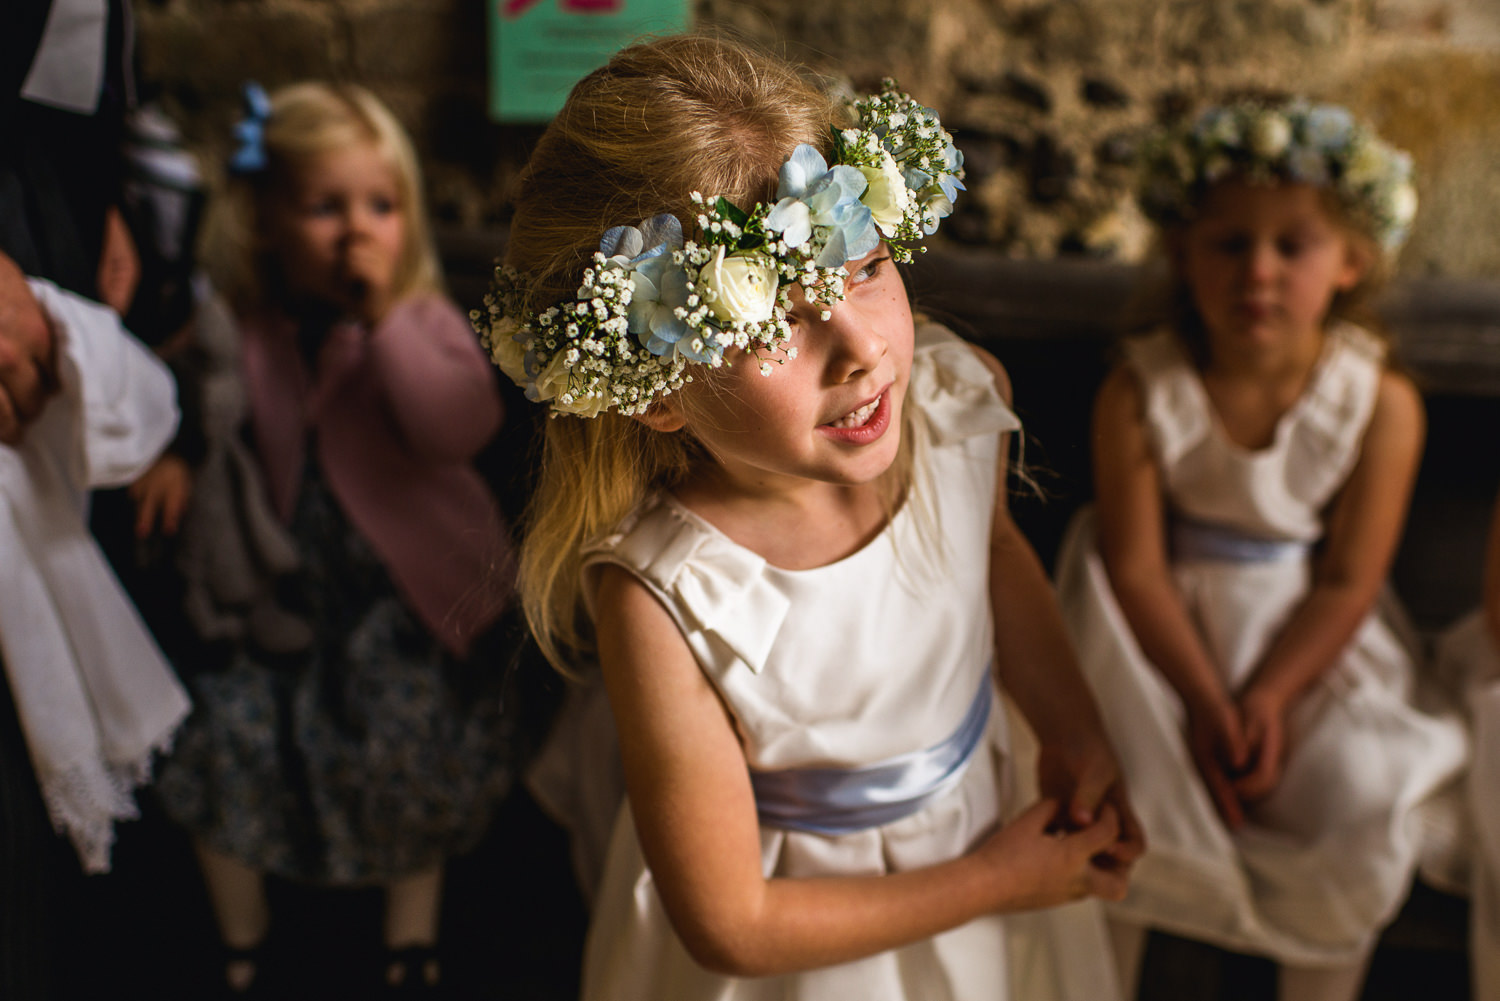 Flower girl at wedding with flower crown